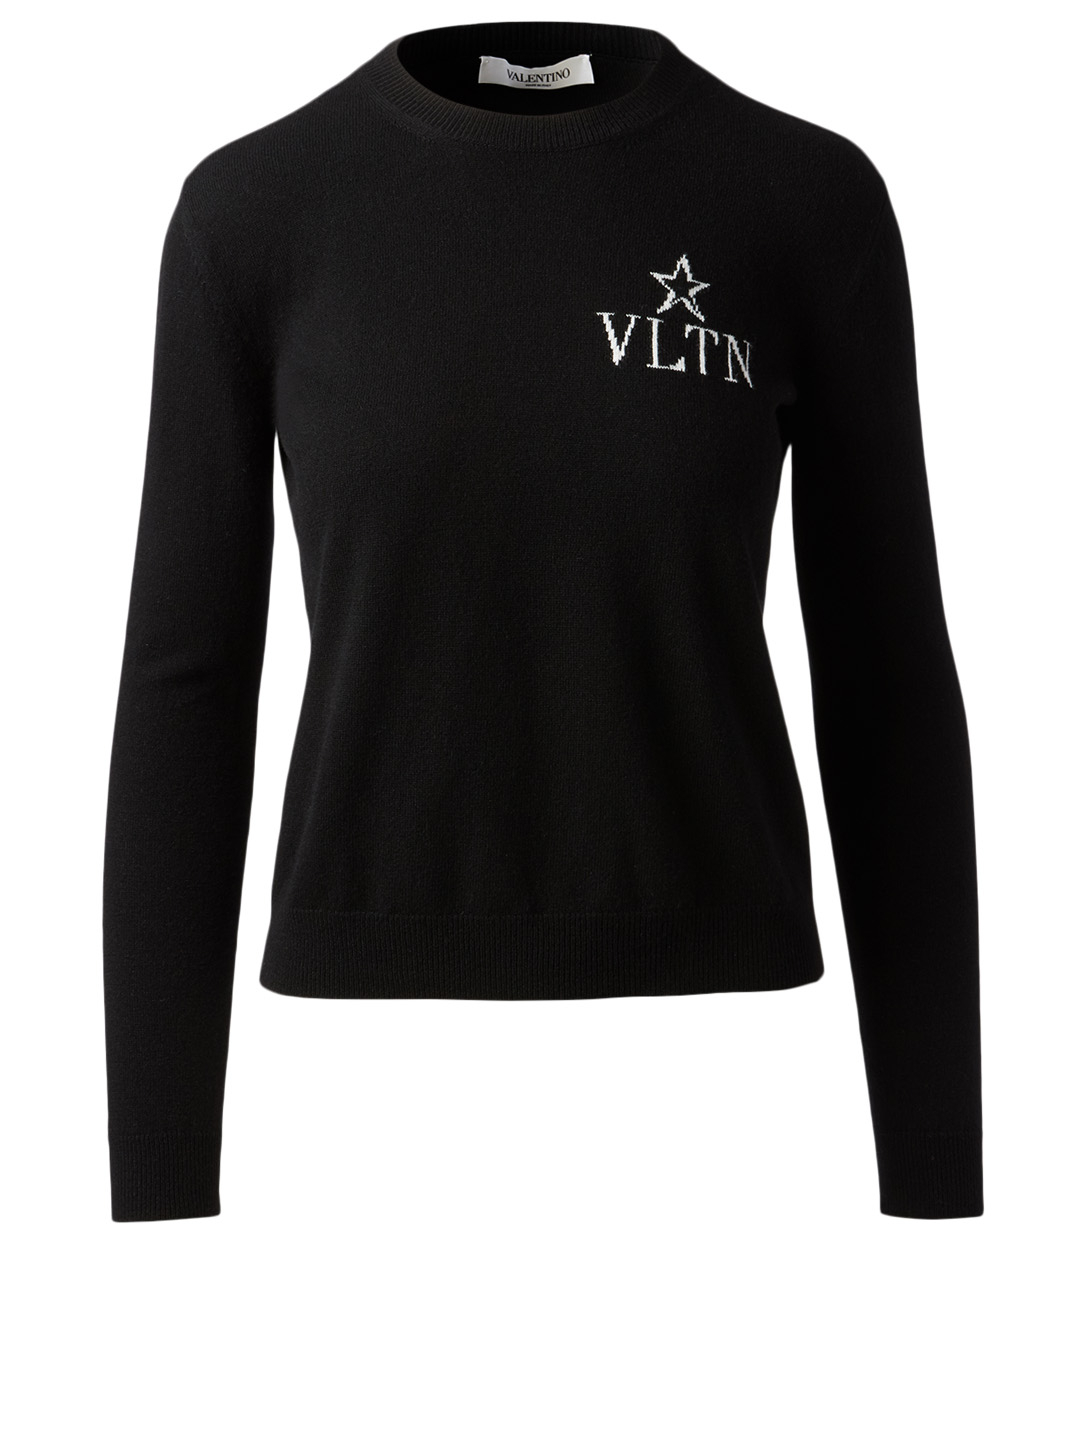 VALENTINO VLTNSTAR Wool And Cashmere Inlaid Sweater Women's Black